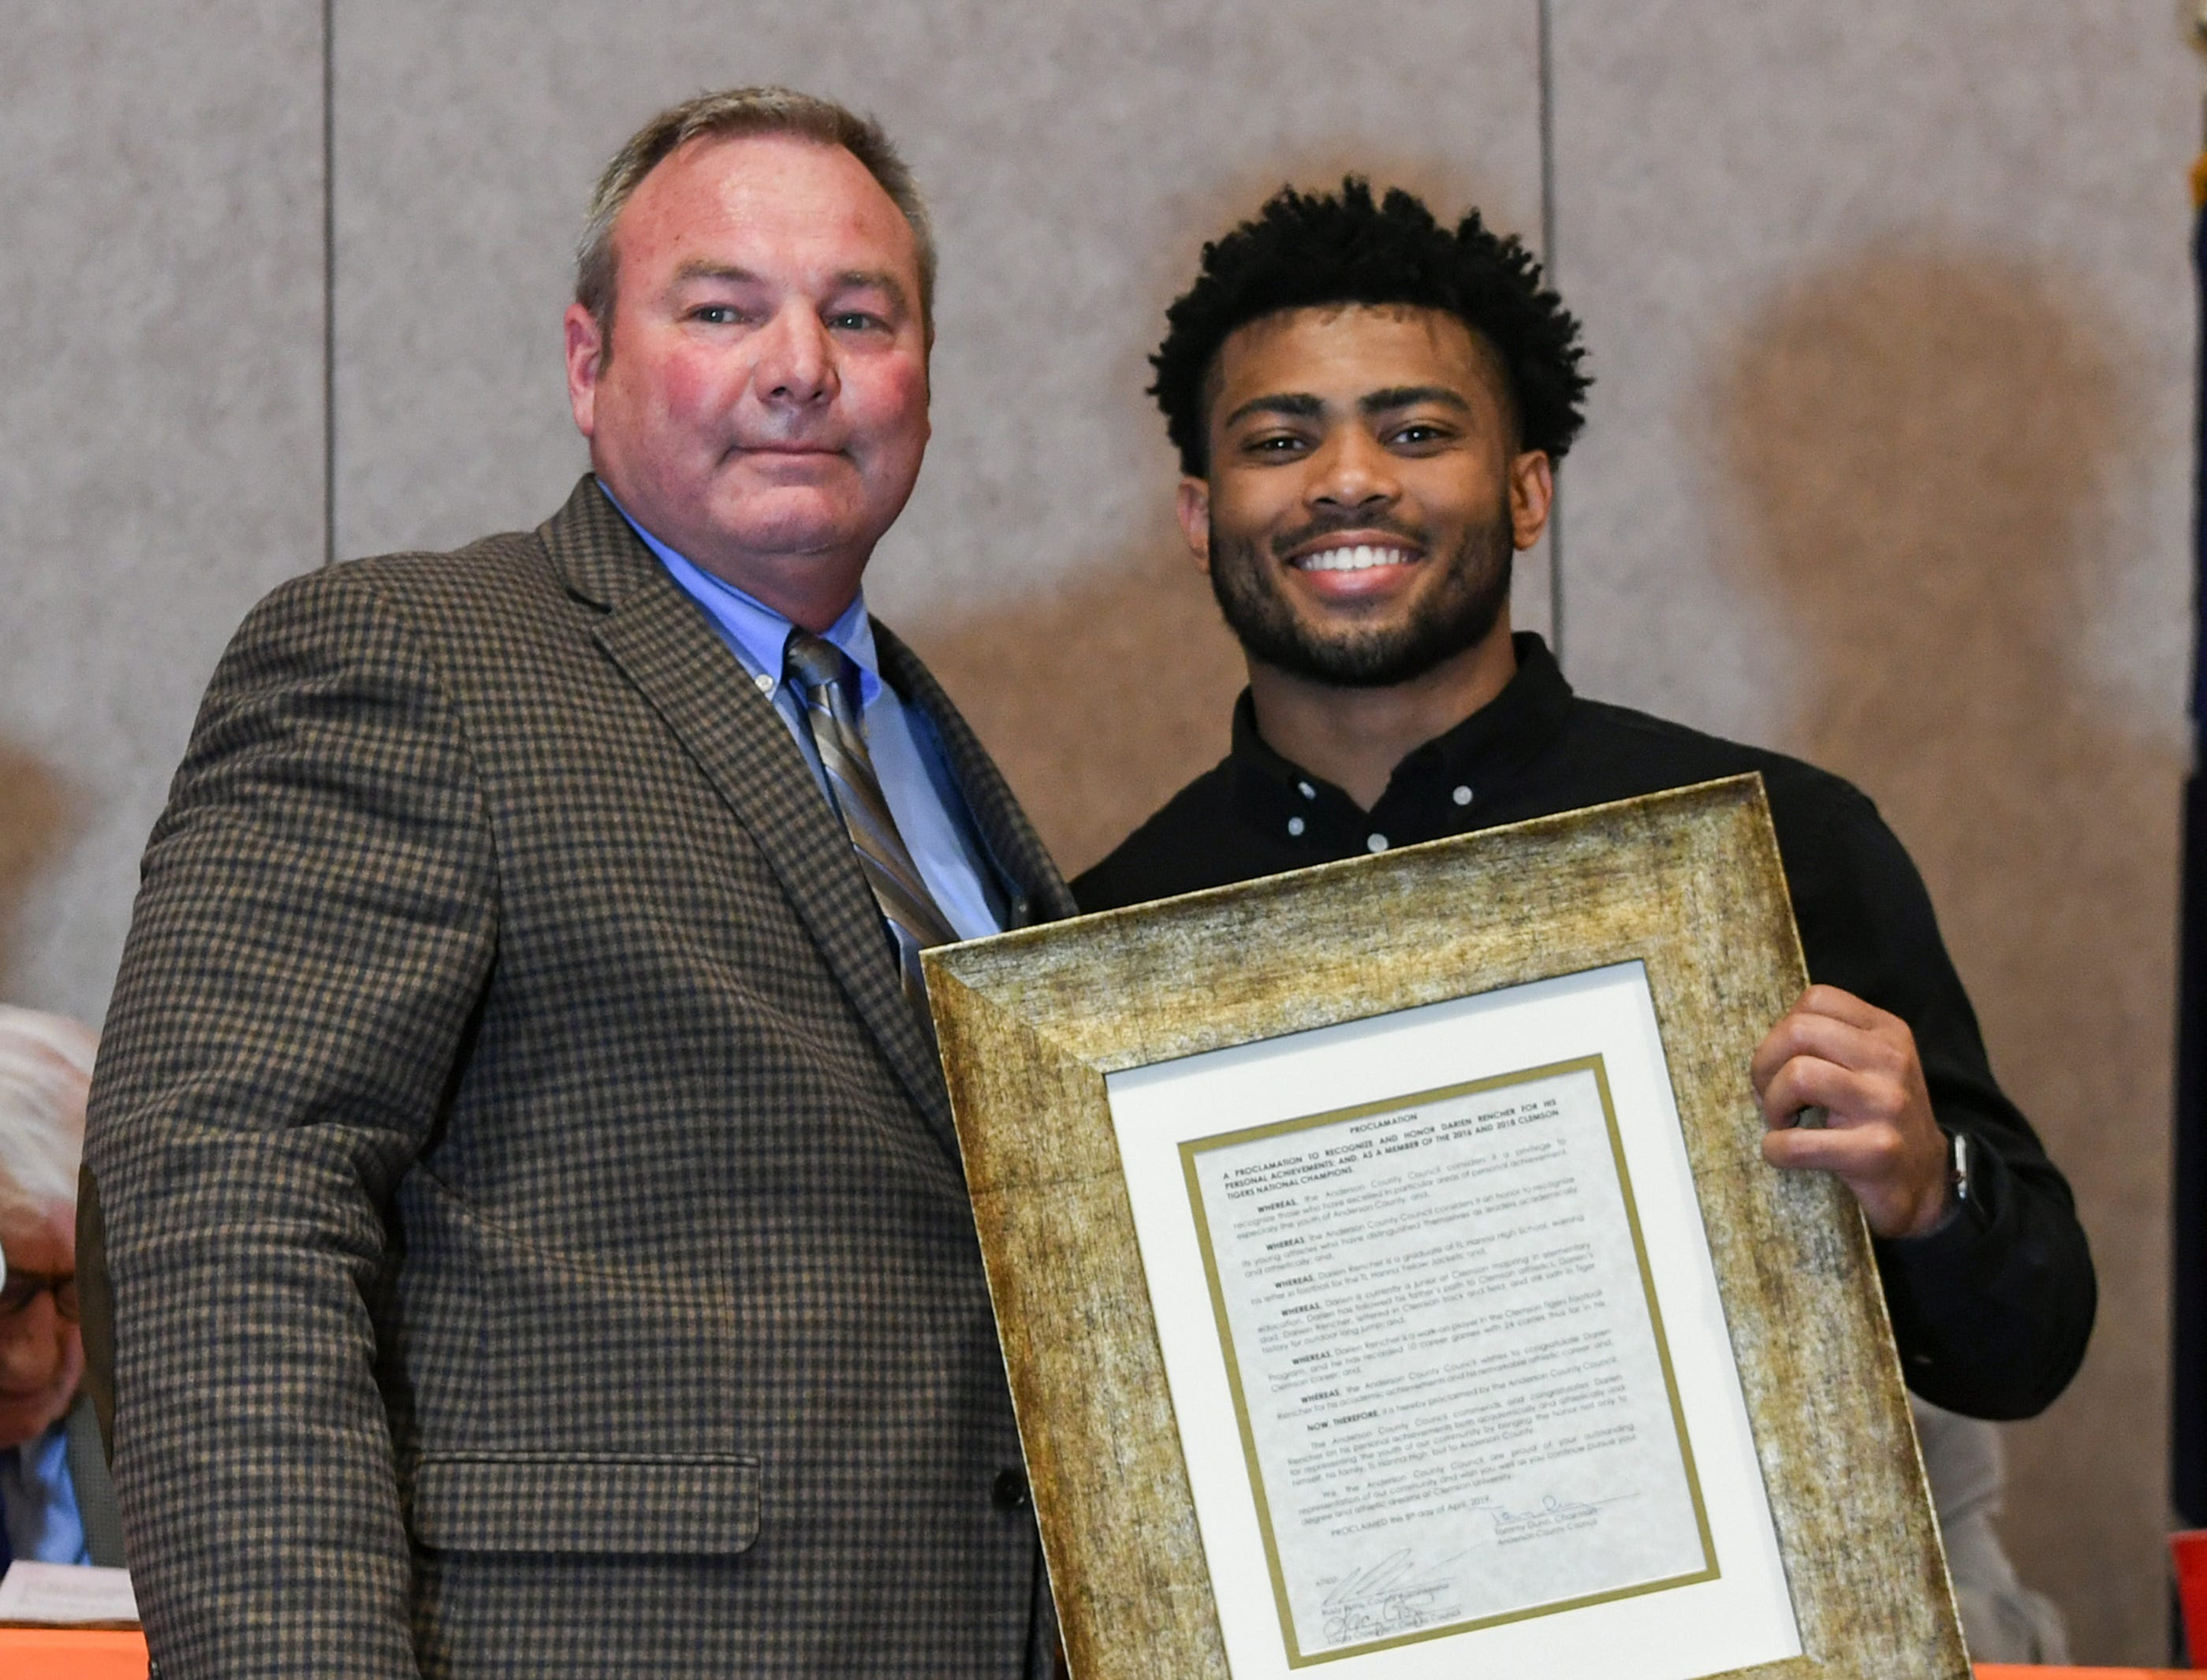 Brett Sanders, left, Anderson County Councilman makes a proclamation honoring Darien Rencher, right, a former T.L. Hanna High football player from Anderson County, and two-time college football national champion during the Anderson Area Touchdown Club Annual Awards Banquet at the Anderson County Civic Center Monday, April 8th, 2019.